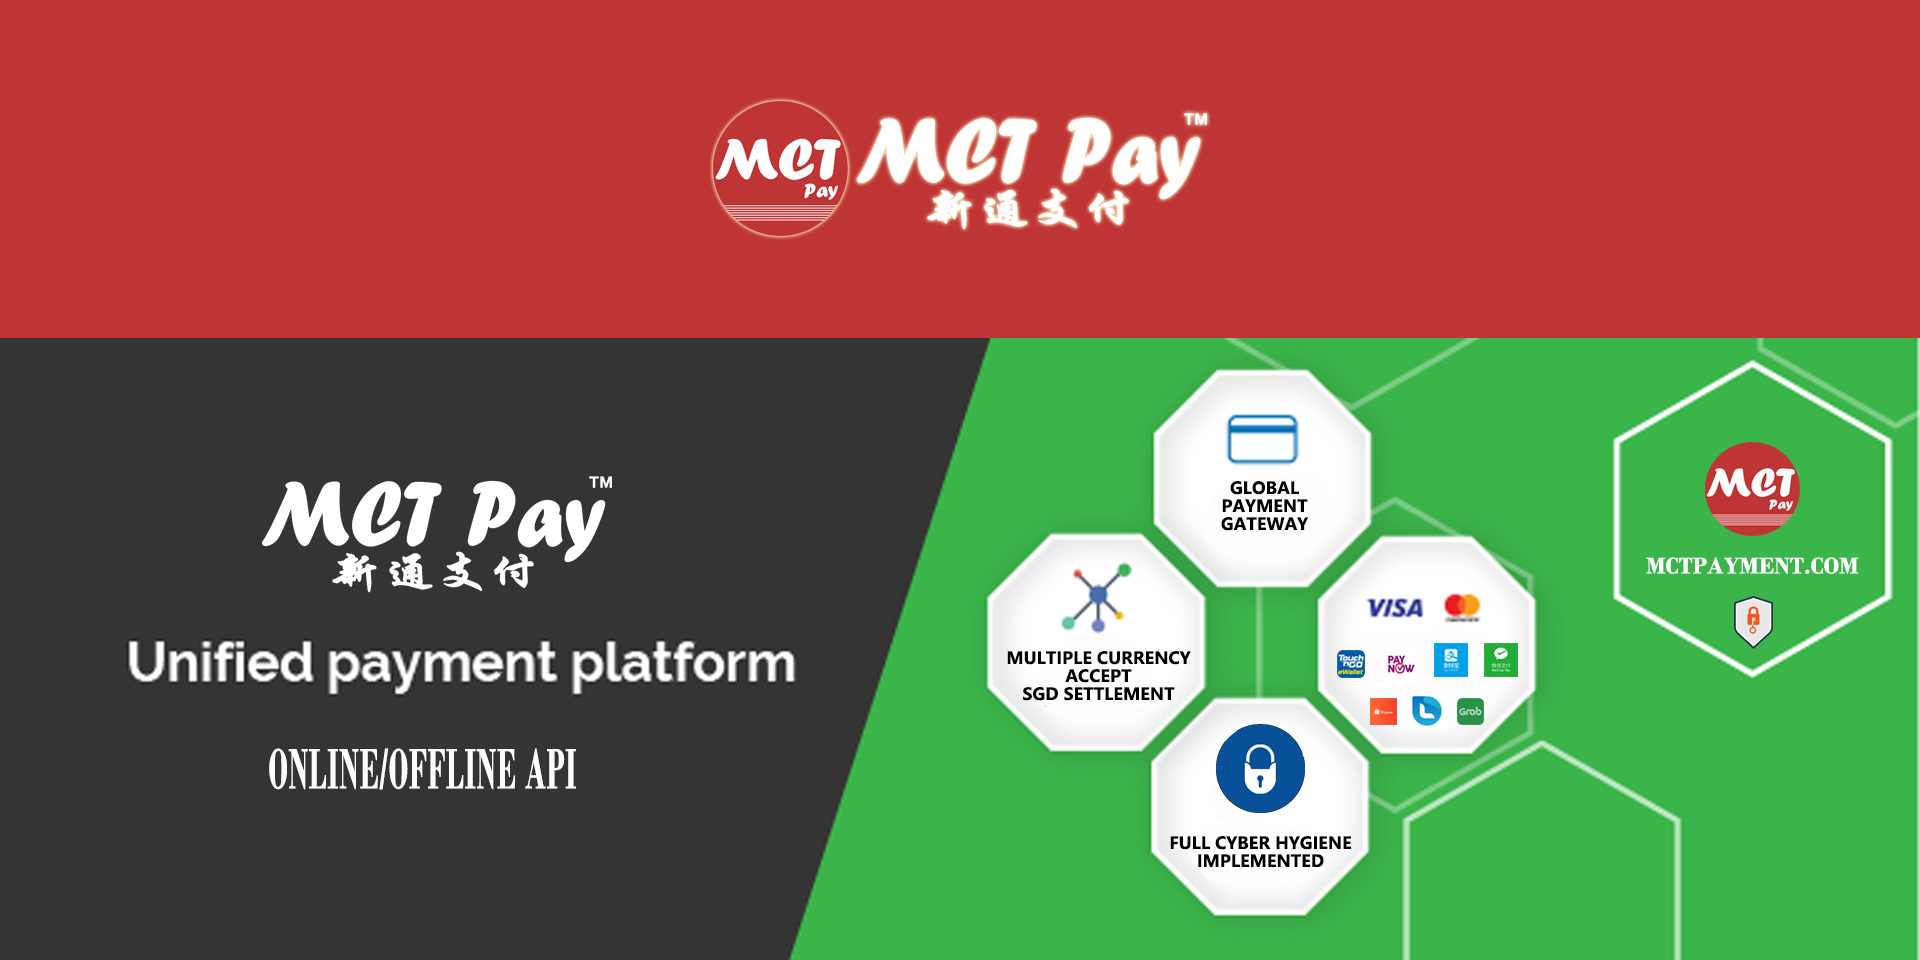 MCTPay